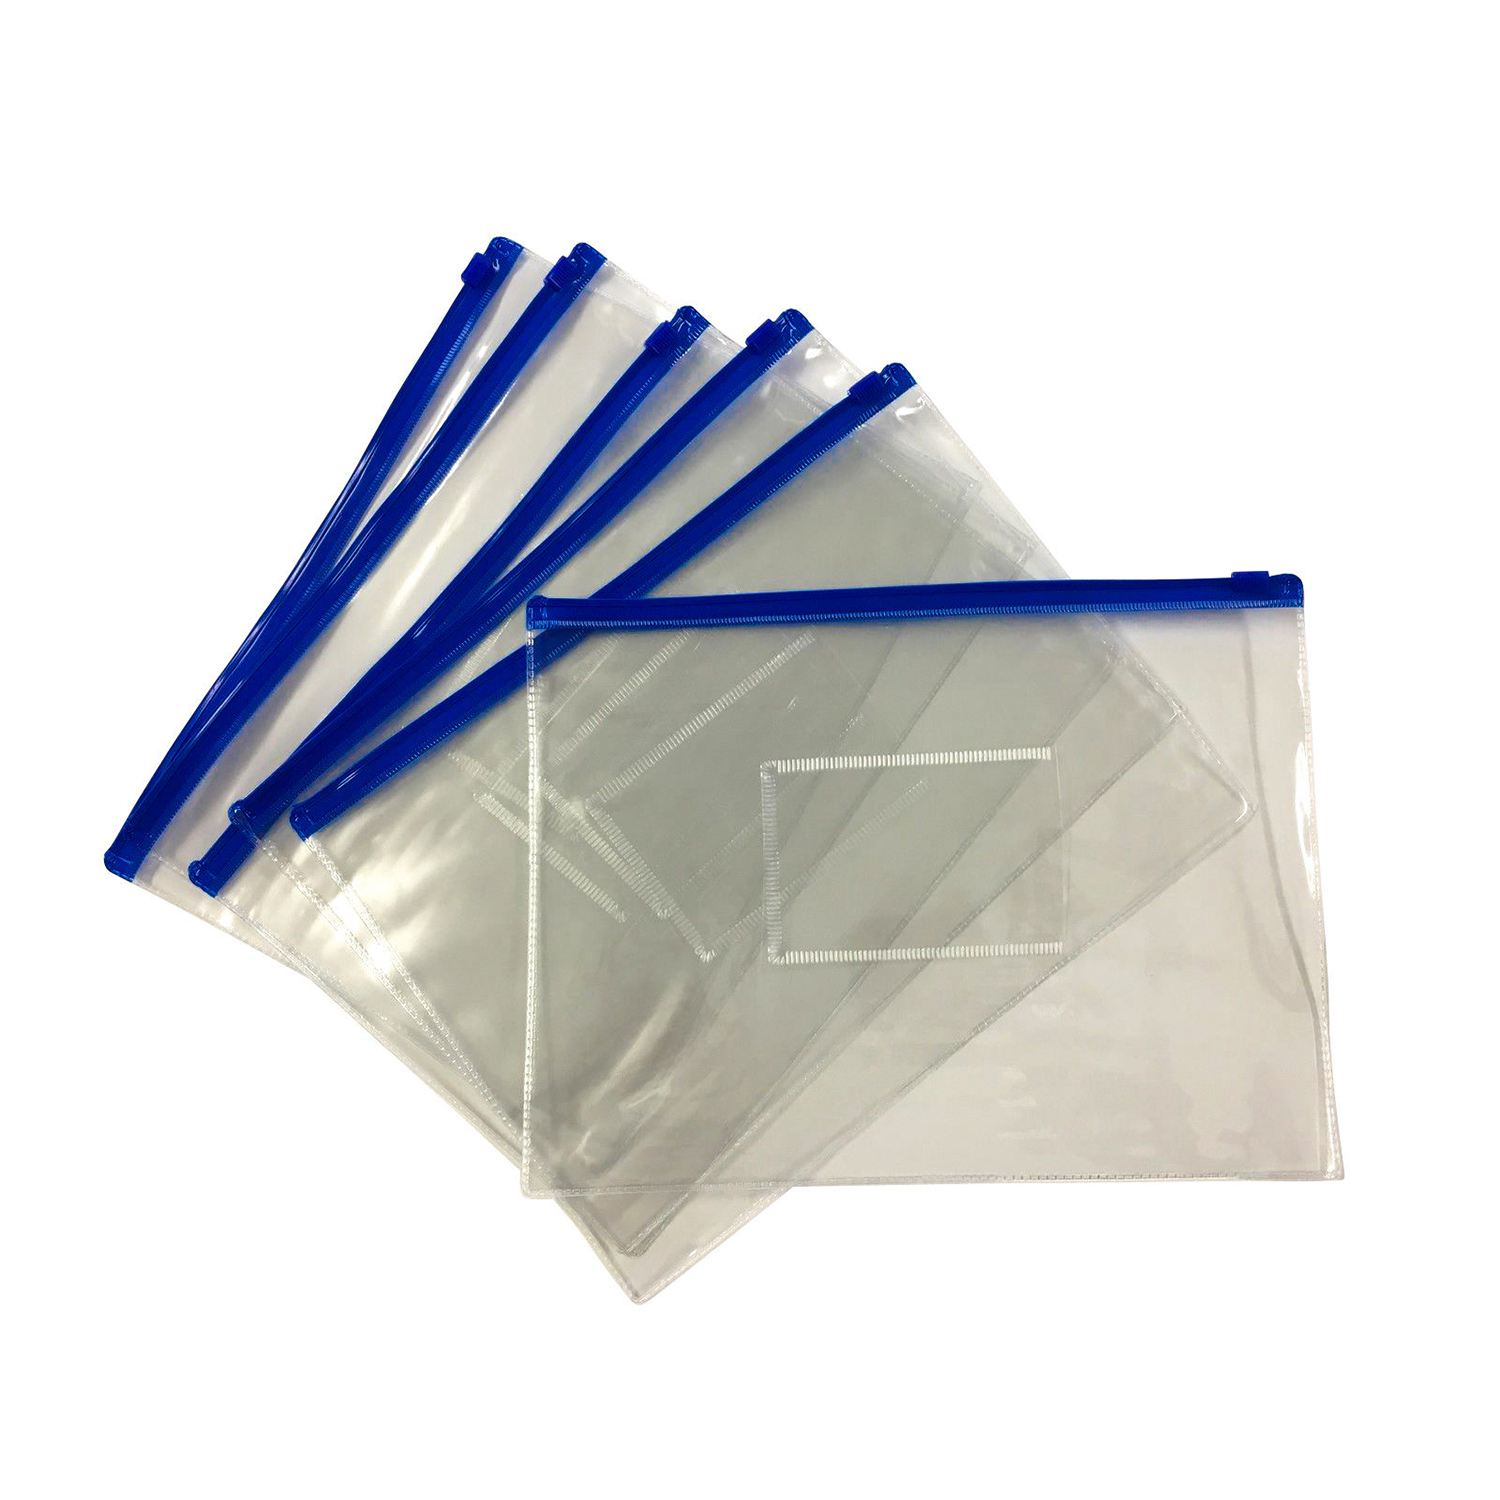 Affordable 12 X A5 Blue Zip Zippy Bags -Document Clear Plastic Transparent Storage Bag